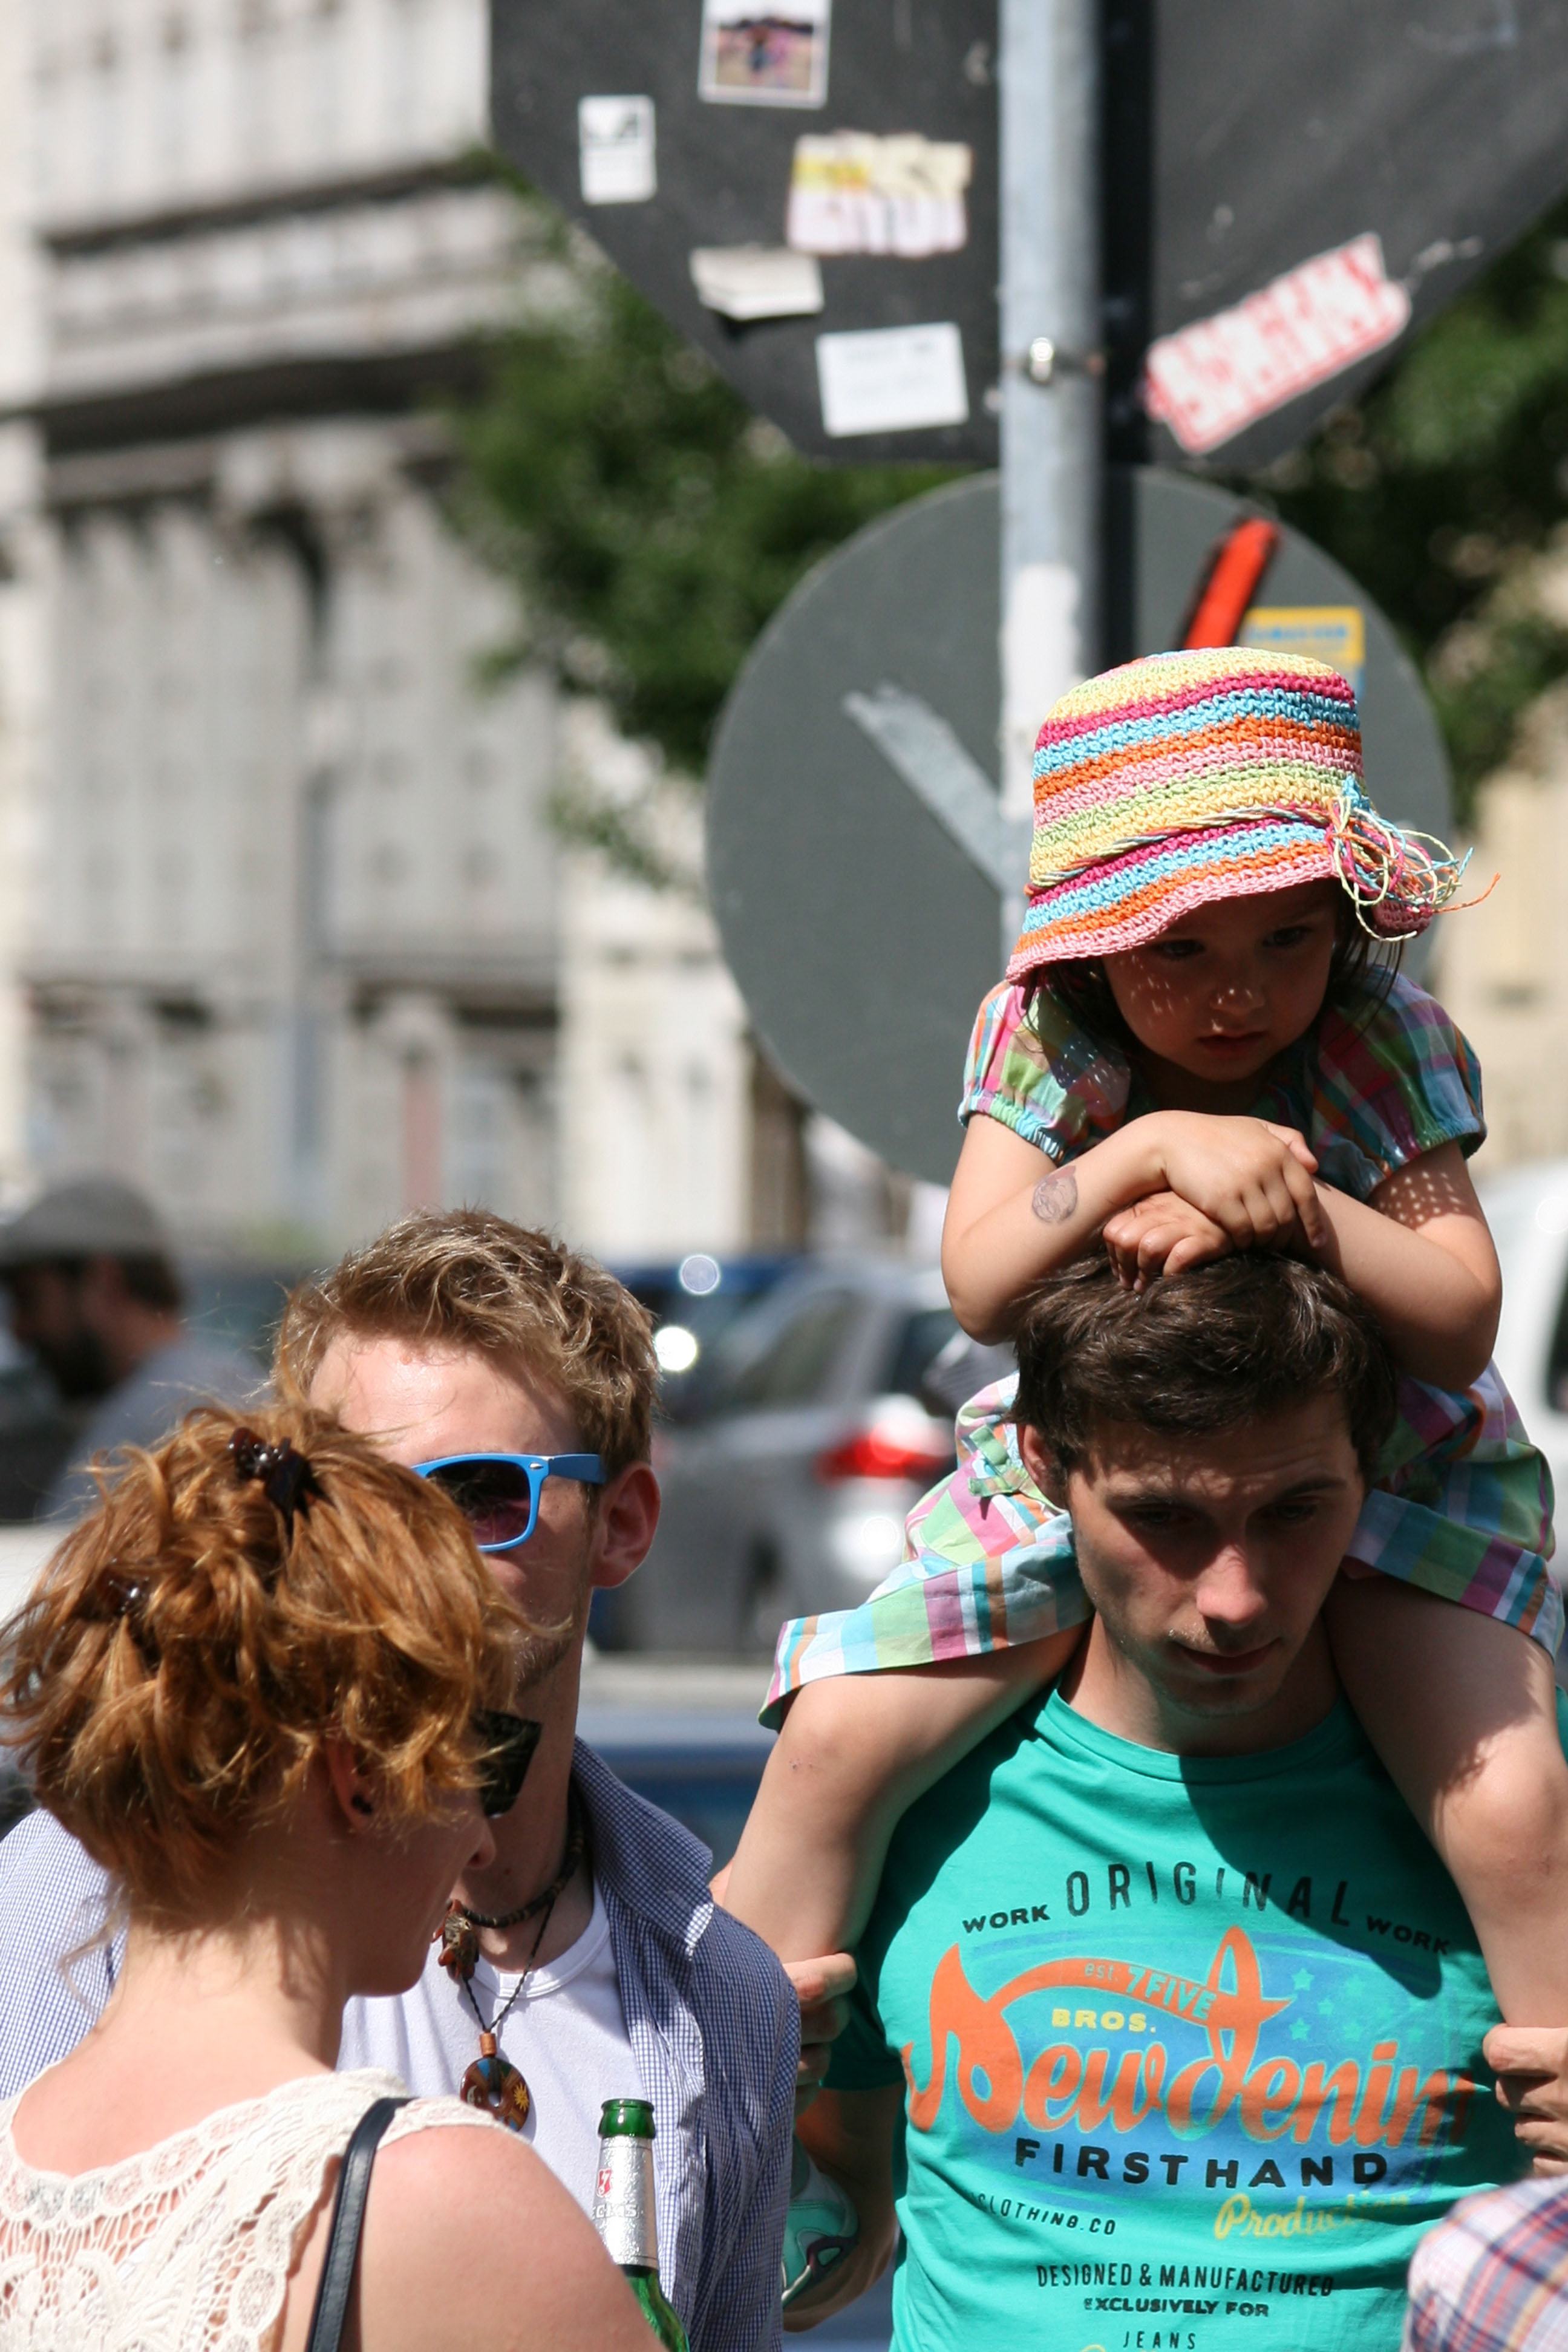 Thanks Daddy - a child gets a better view at Karneval der Kulturen (Carnival of Cultures) in Berlin